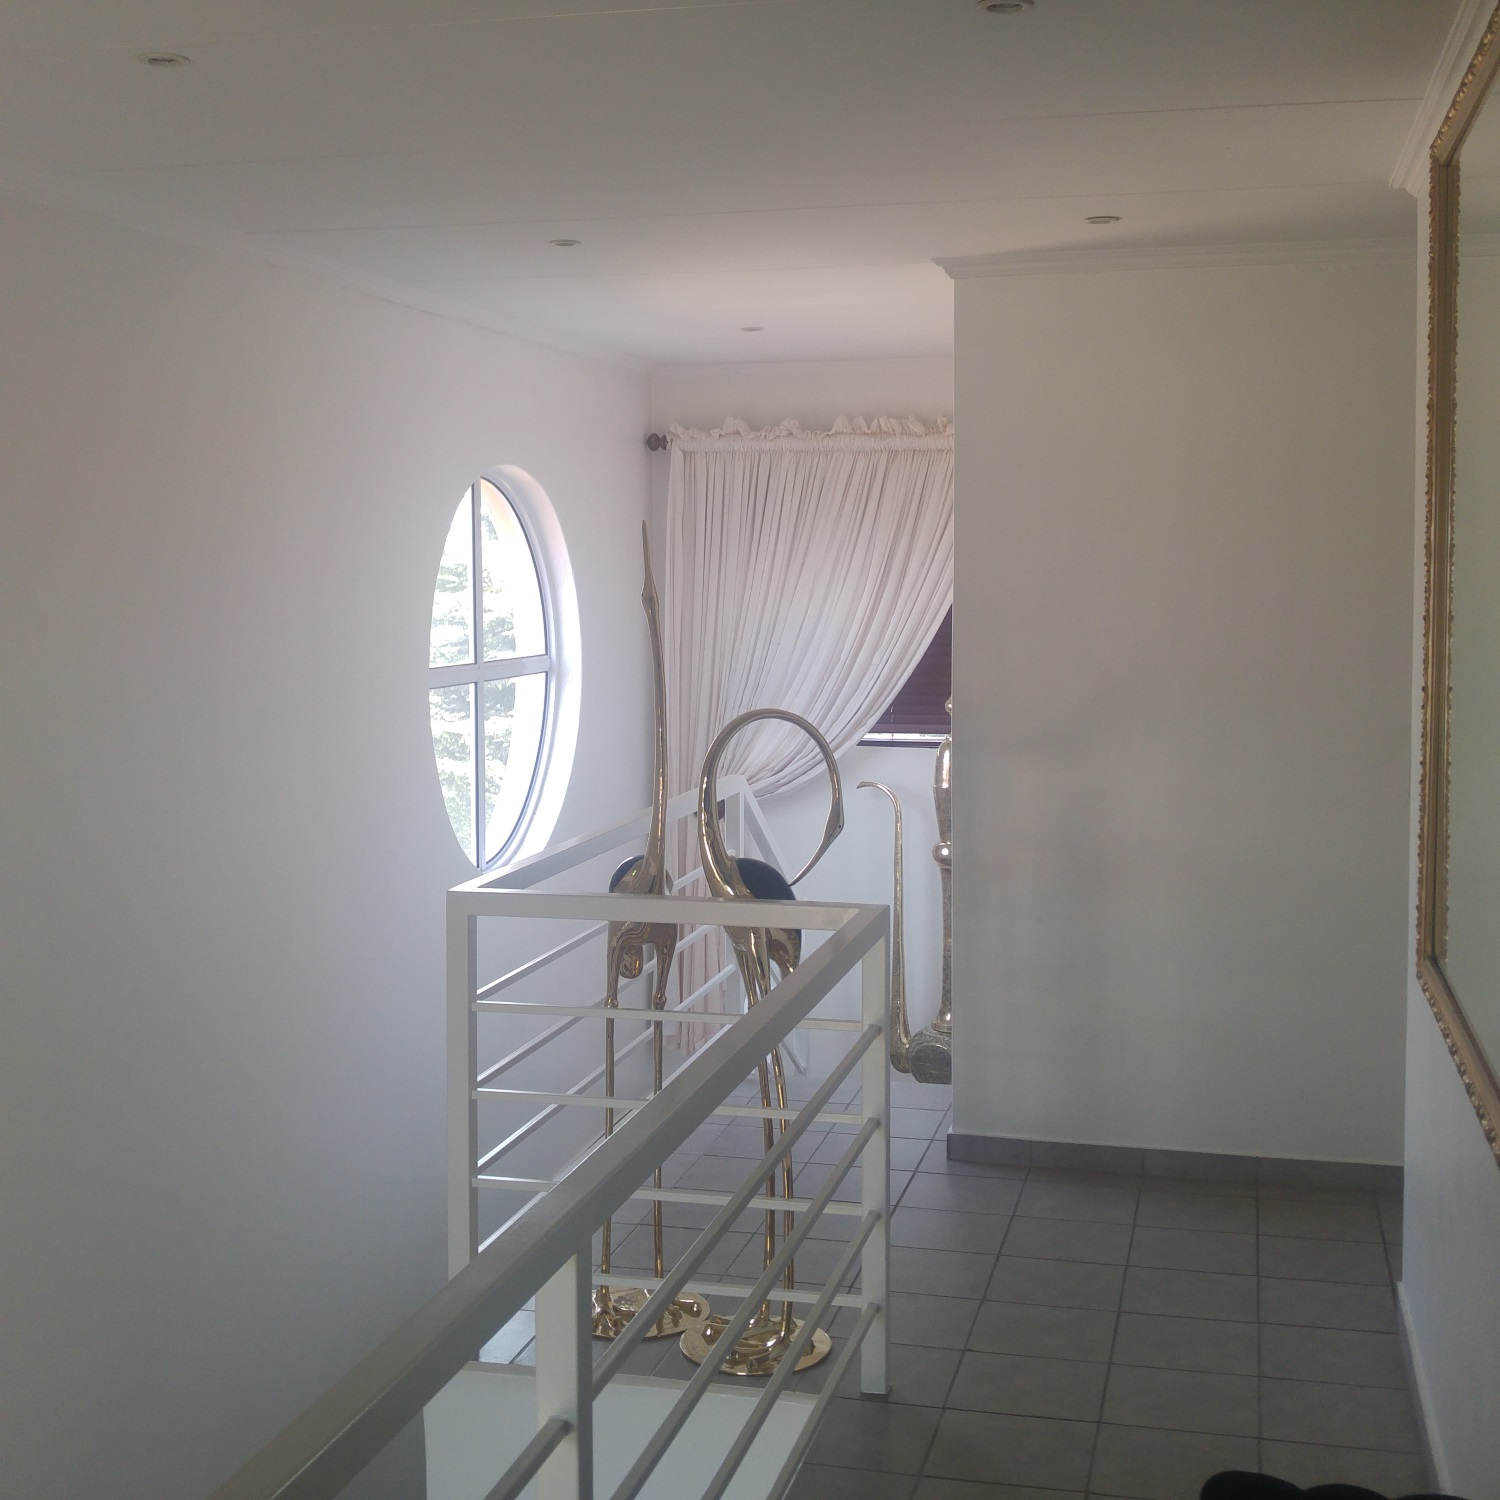 4 Bedroom Townhouse for sale in Glenvista Ext 6 ENT0001967 : photo#6